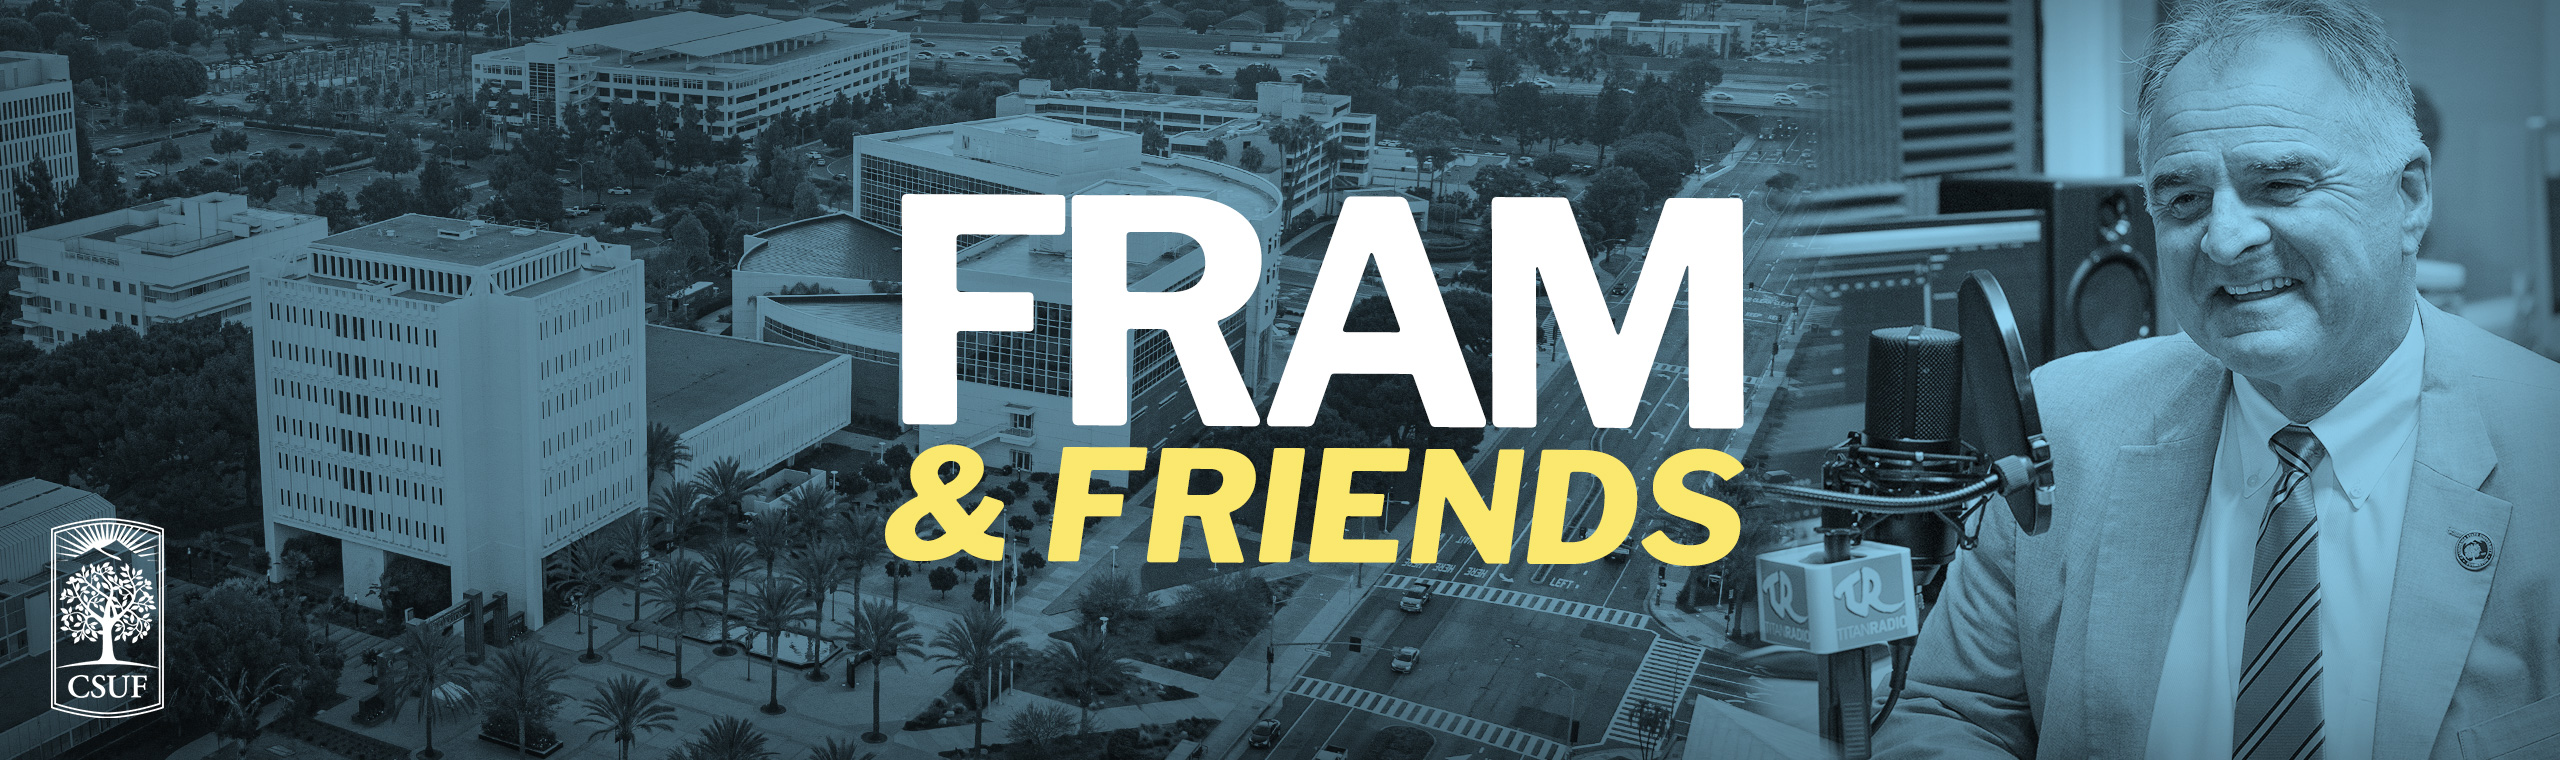 Fram and Friends banner v2